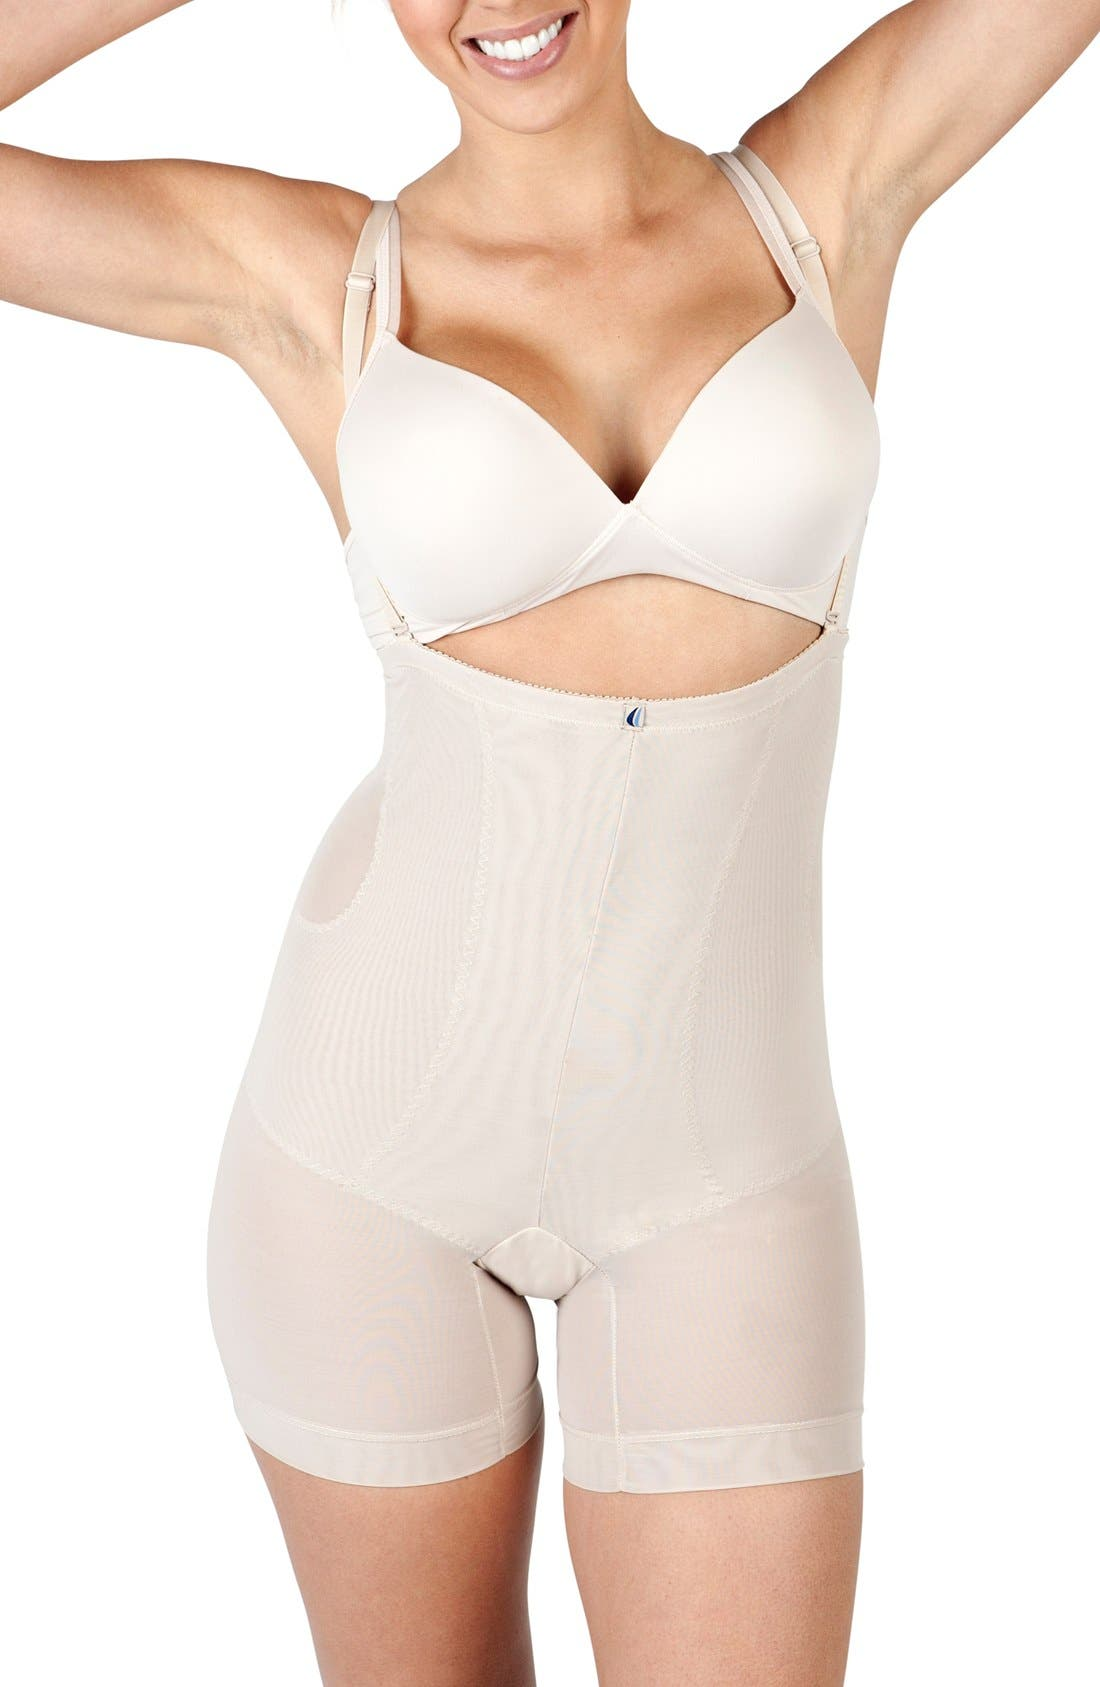 Alternate Image 1 Selected - Body After Baby 'Angelica' Post-Pregnancy Recovery Garment